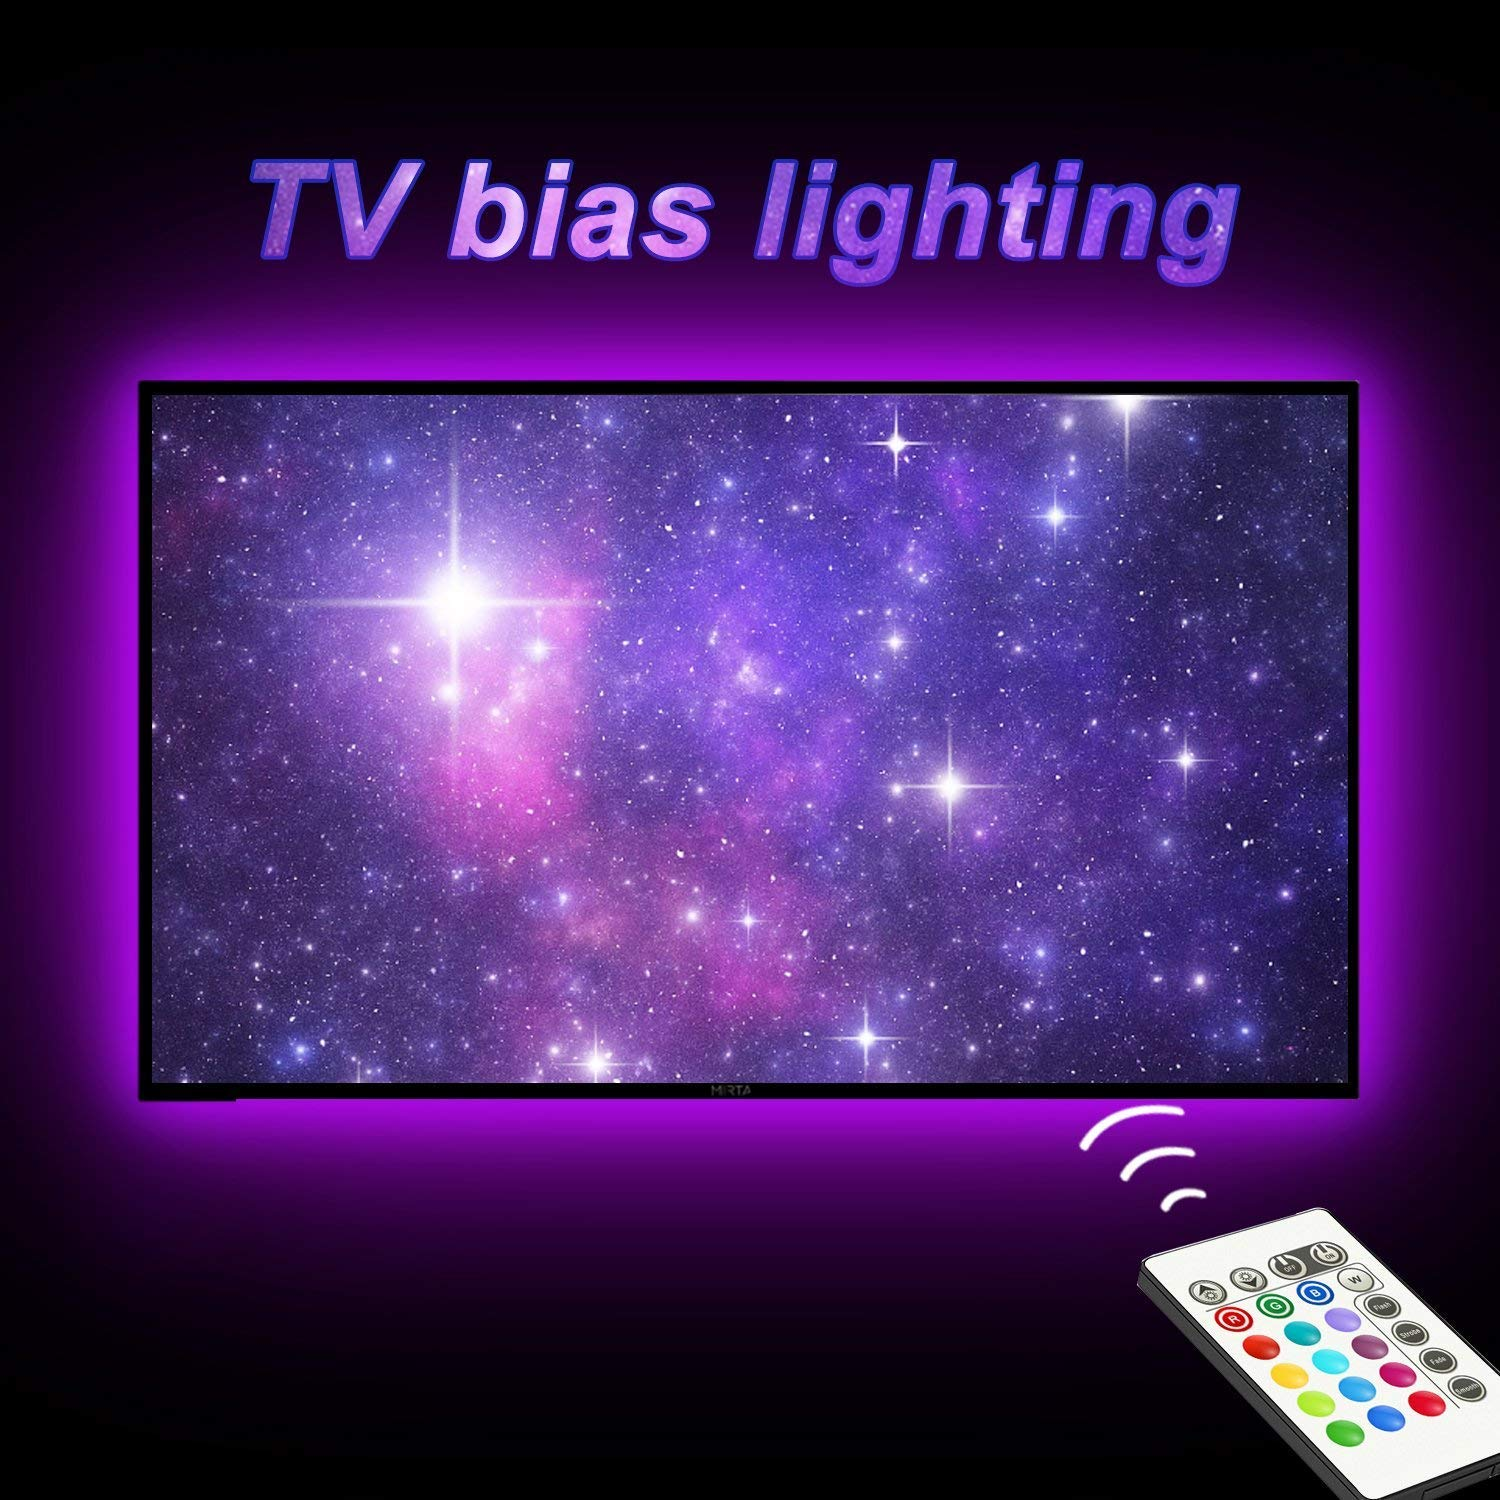 TV Bias Lighting,LED Strip Light USB Powered for 65 to 75 Inches HDTV, TV Backlight Kit with 24keys Remote 20 Color Options and Dimmable LED Lights WORATON CABINETLITE007